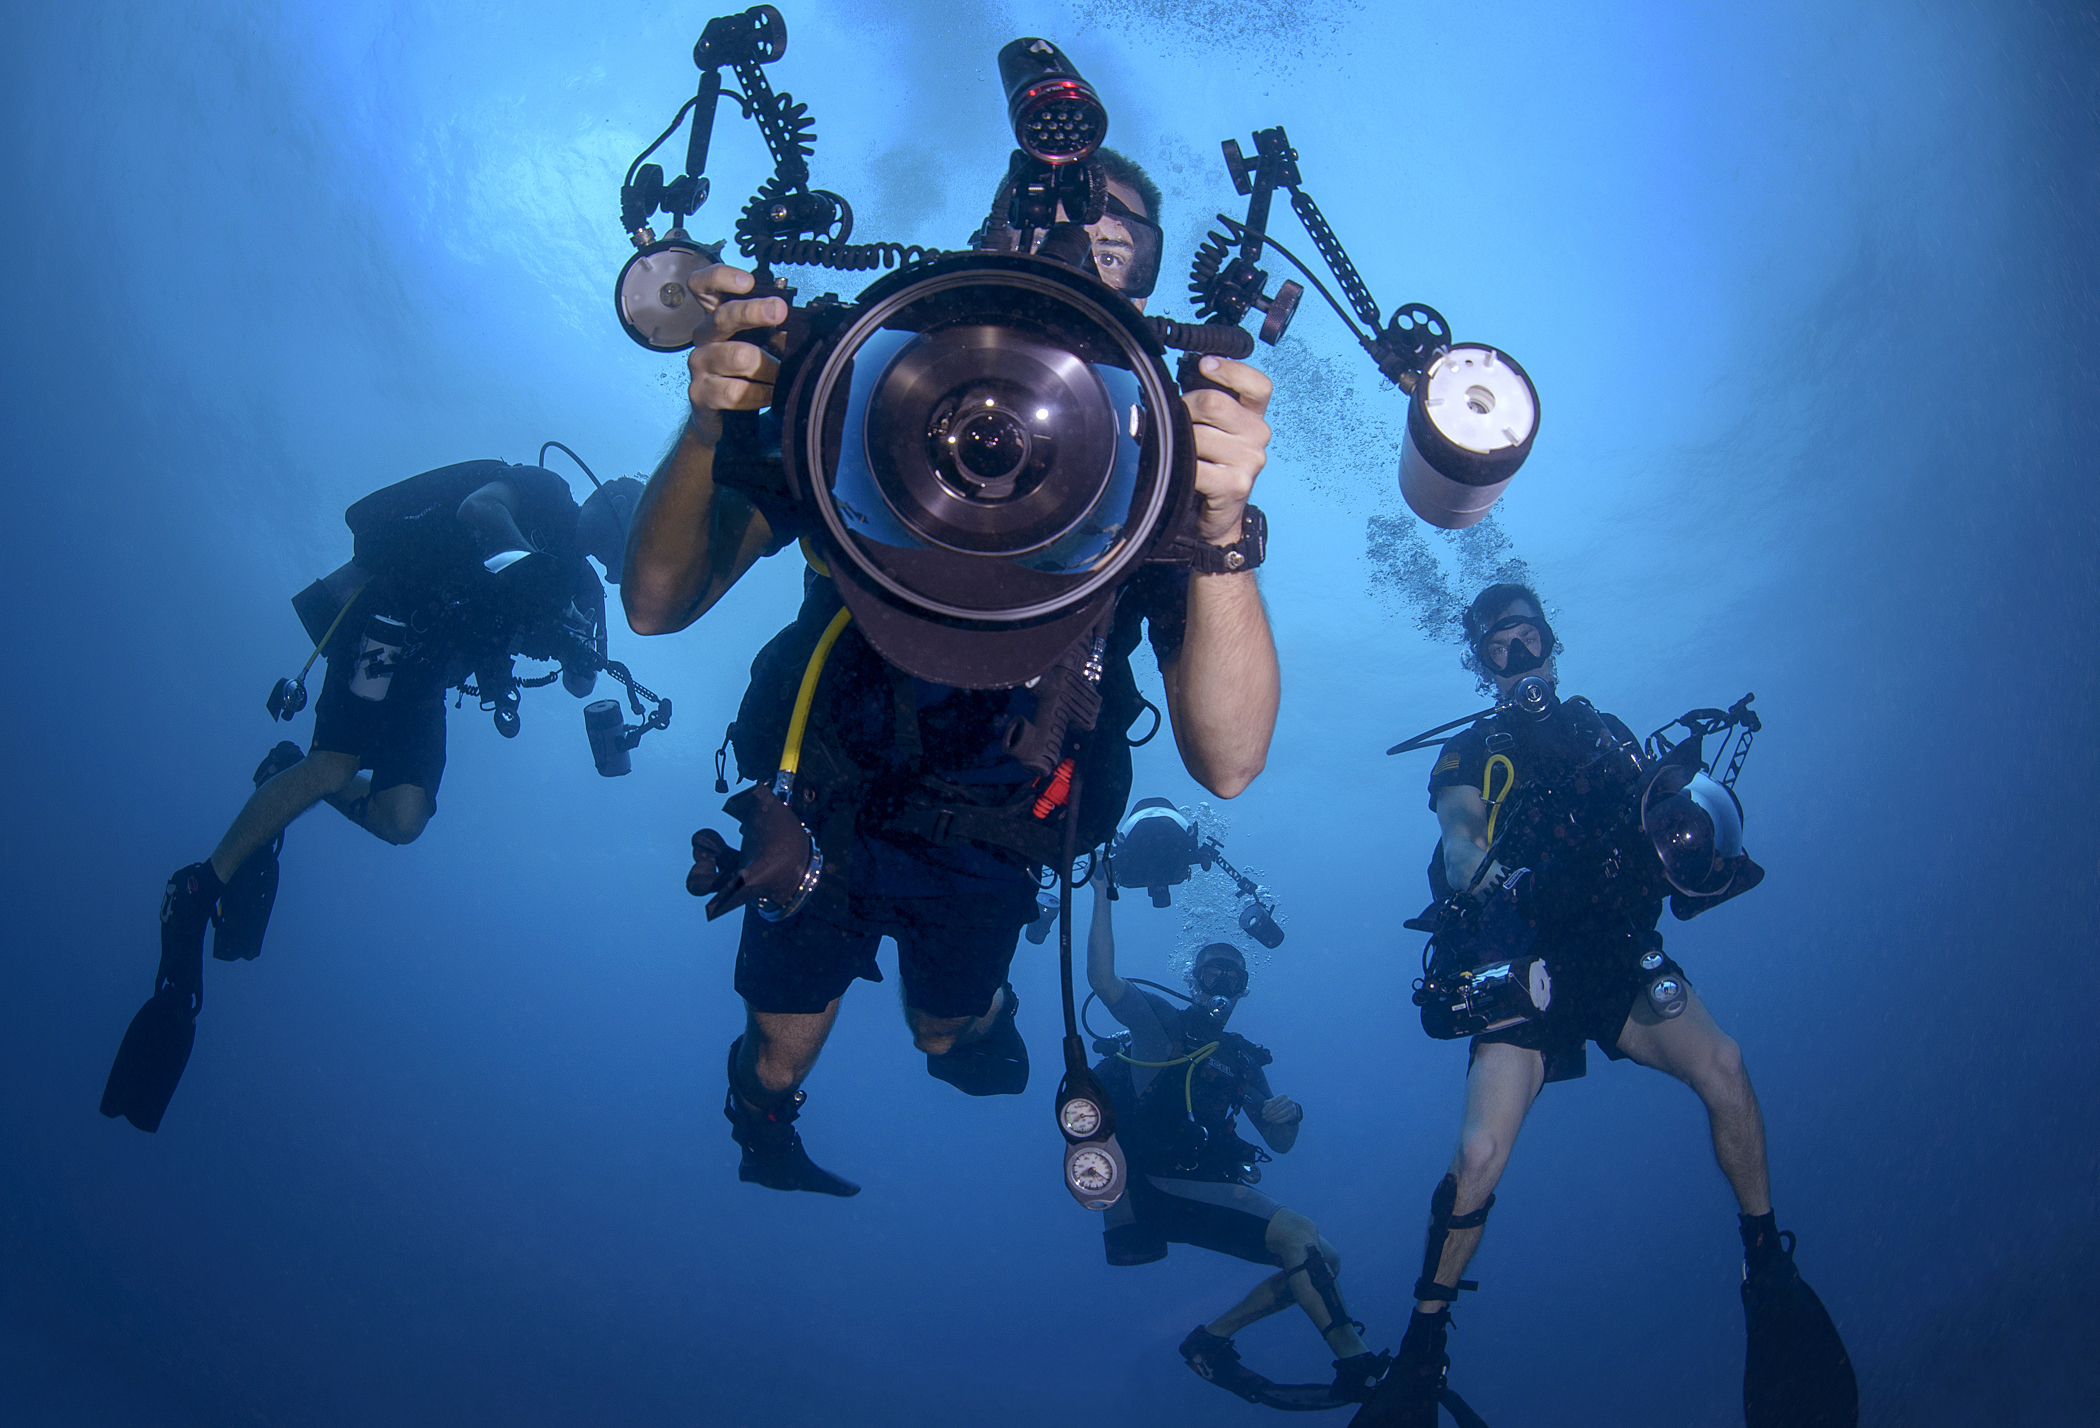 navy diver photographer taking picture with team underwater